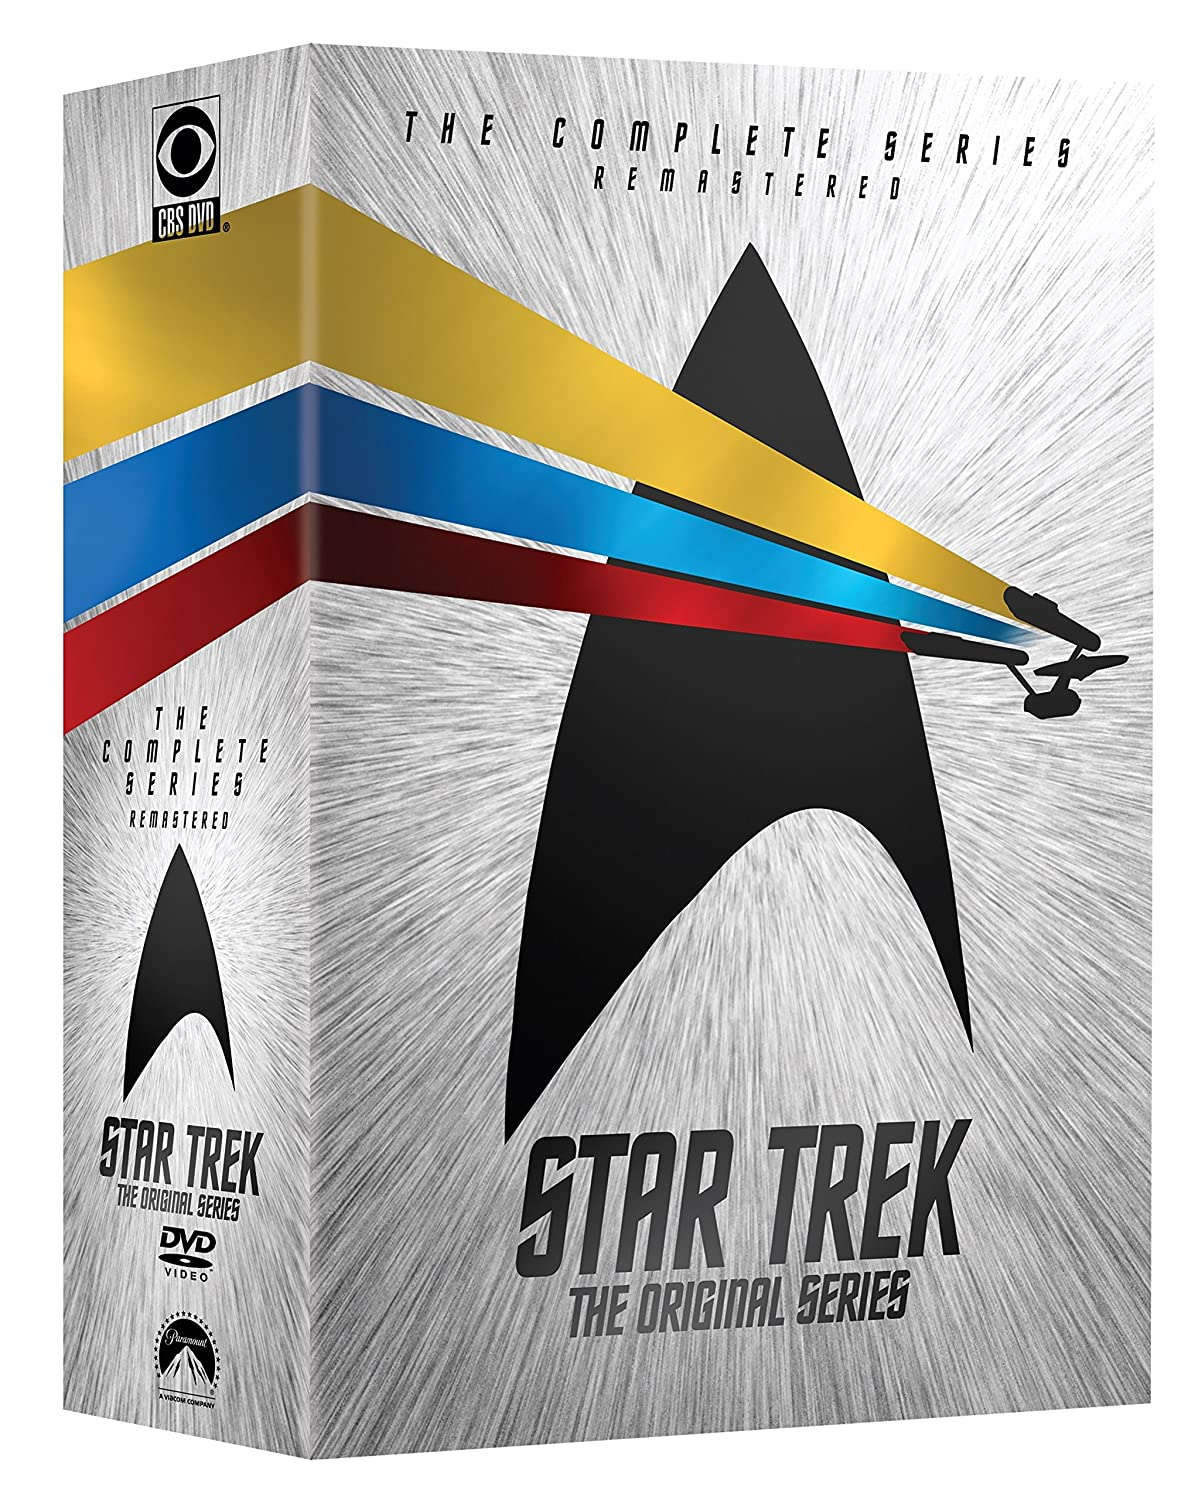 Amazon.com: Star Trek: The Original Series - The Complete Series: Leonard  Nimoy, William Shatner, DeForest Kelley, Nichelle Nichols, James Doohan, ...